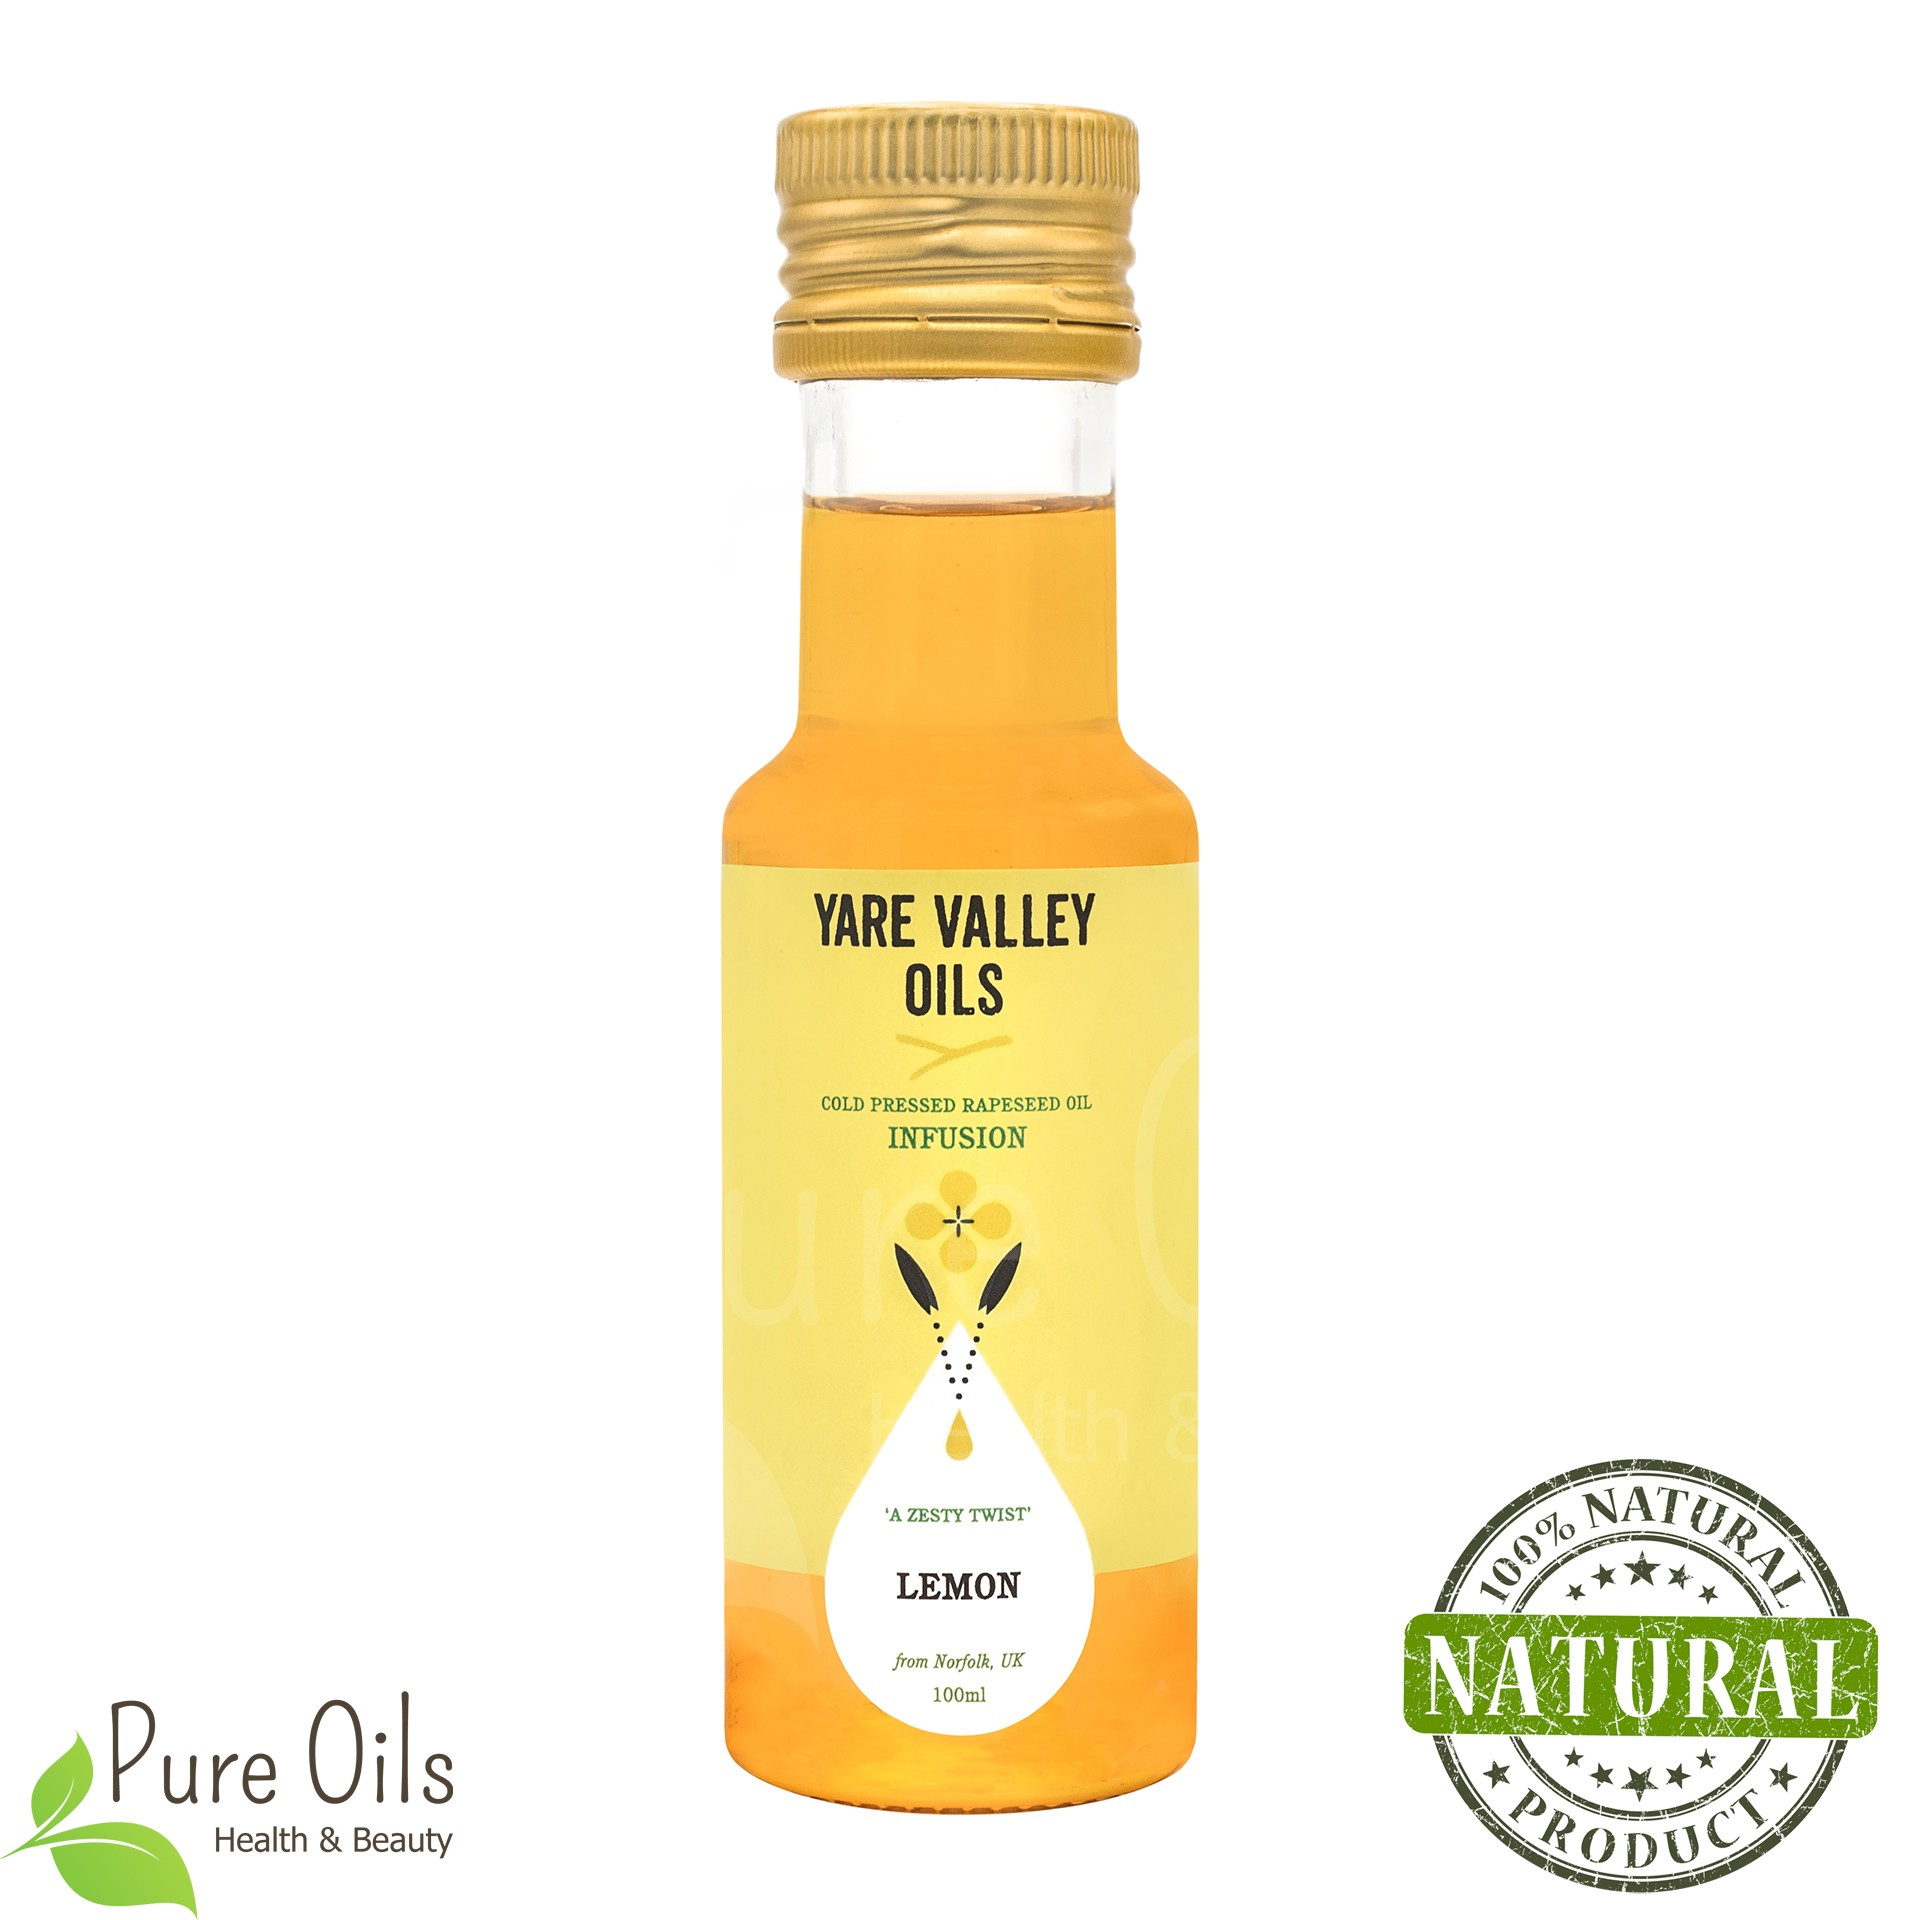 Lemon Rapeseed Oil, Cold Pressed, Yare Valley